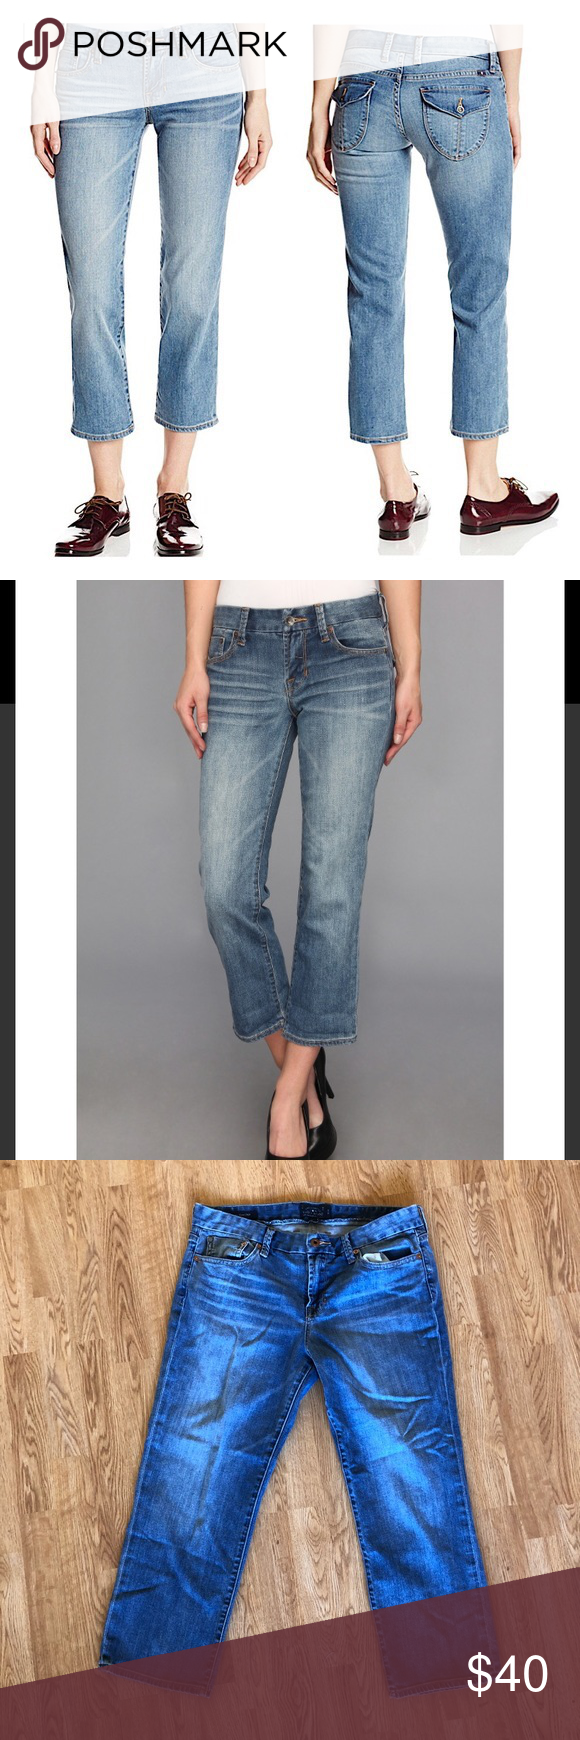 2a46e37867b3d Lucky Brand Sweet Jean Cropped Capris Sweeten your look with Lucky Brand®  denim. Mid-rise jean sports an easy fit through the seat and thigh and a  cropped